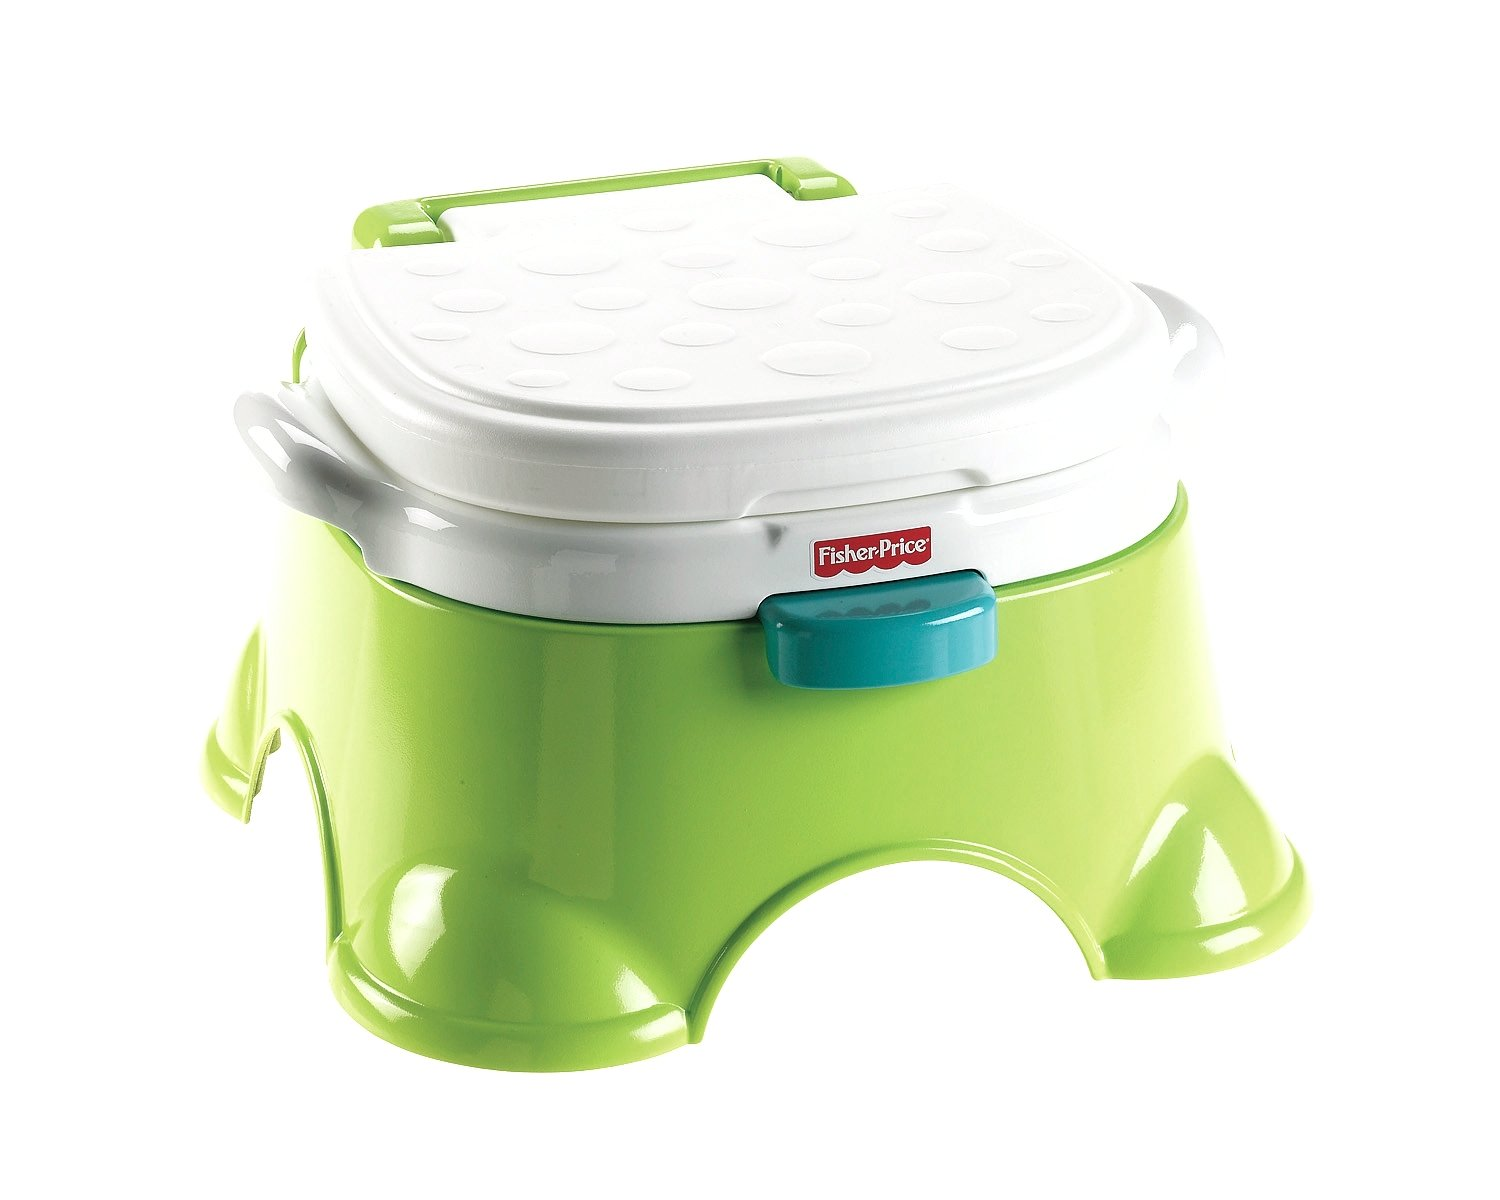 Details about fisher price royal stepstool potty green new free